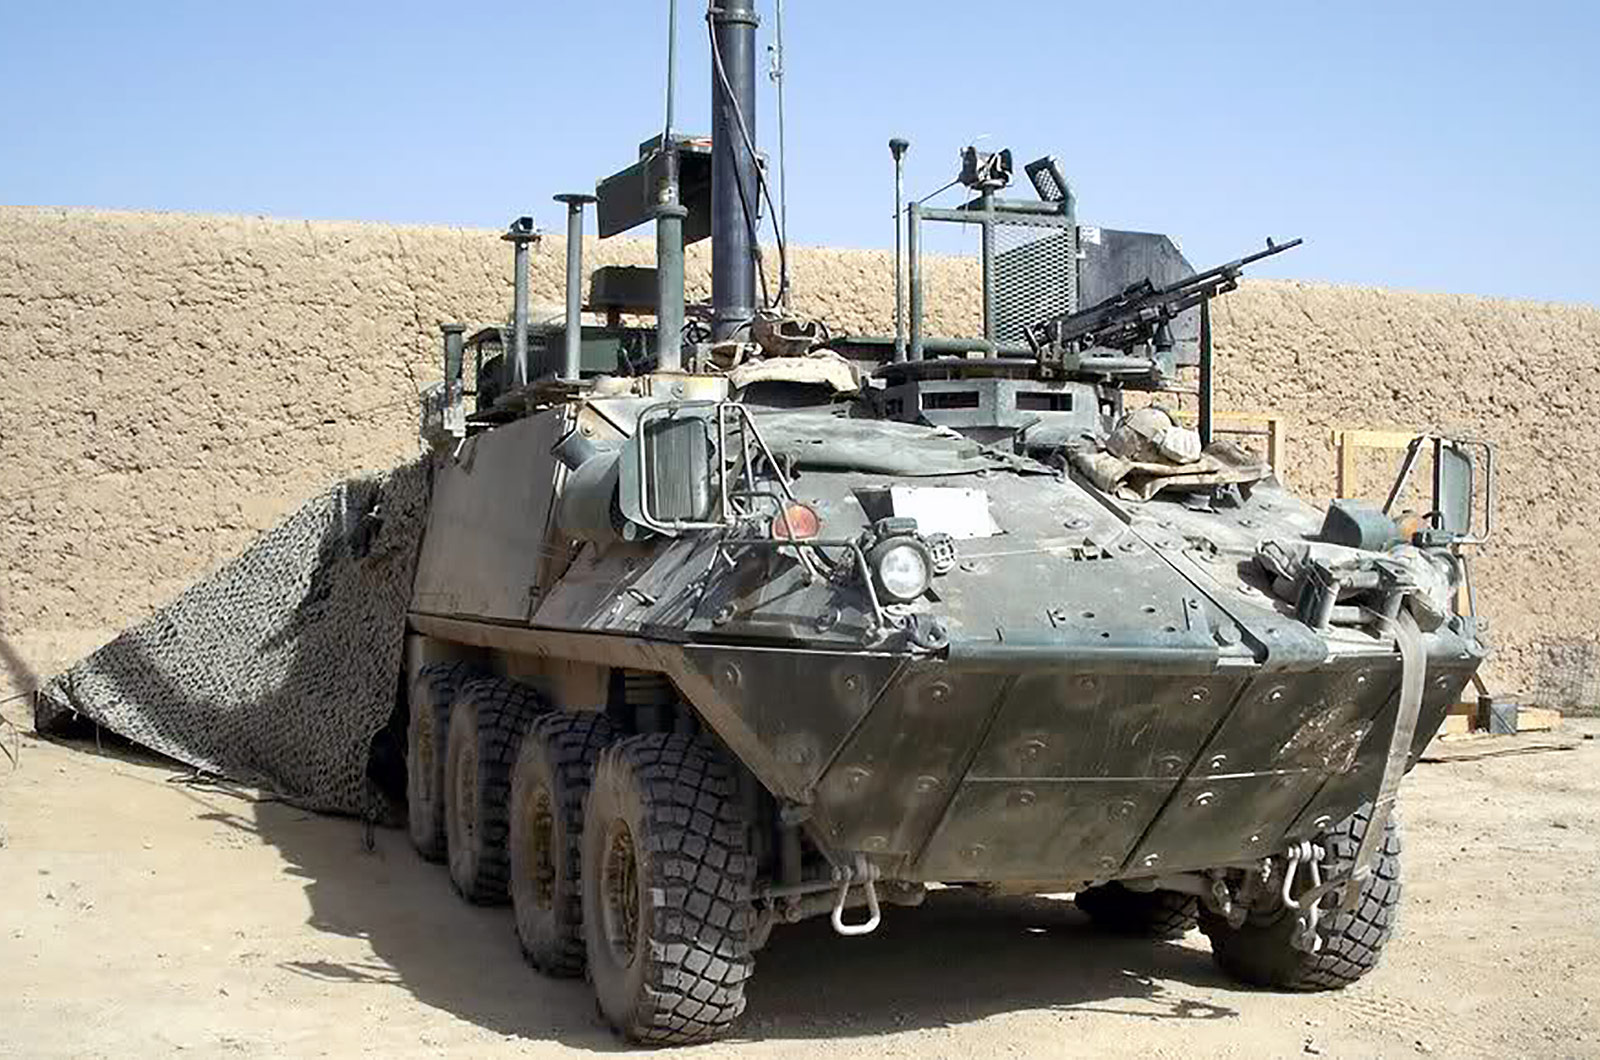 Bison Mobile Electronic Warfare Team Vehicle